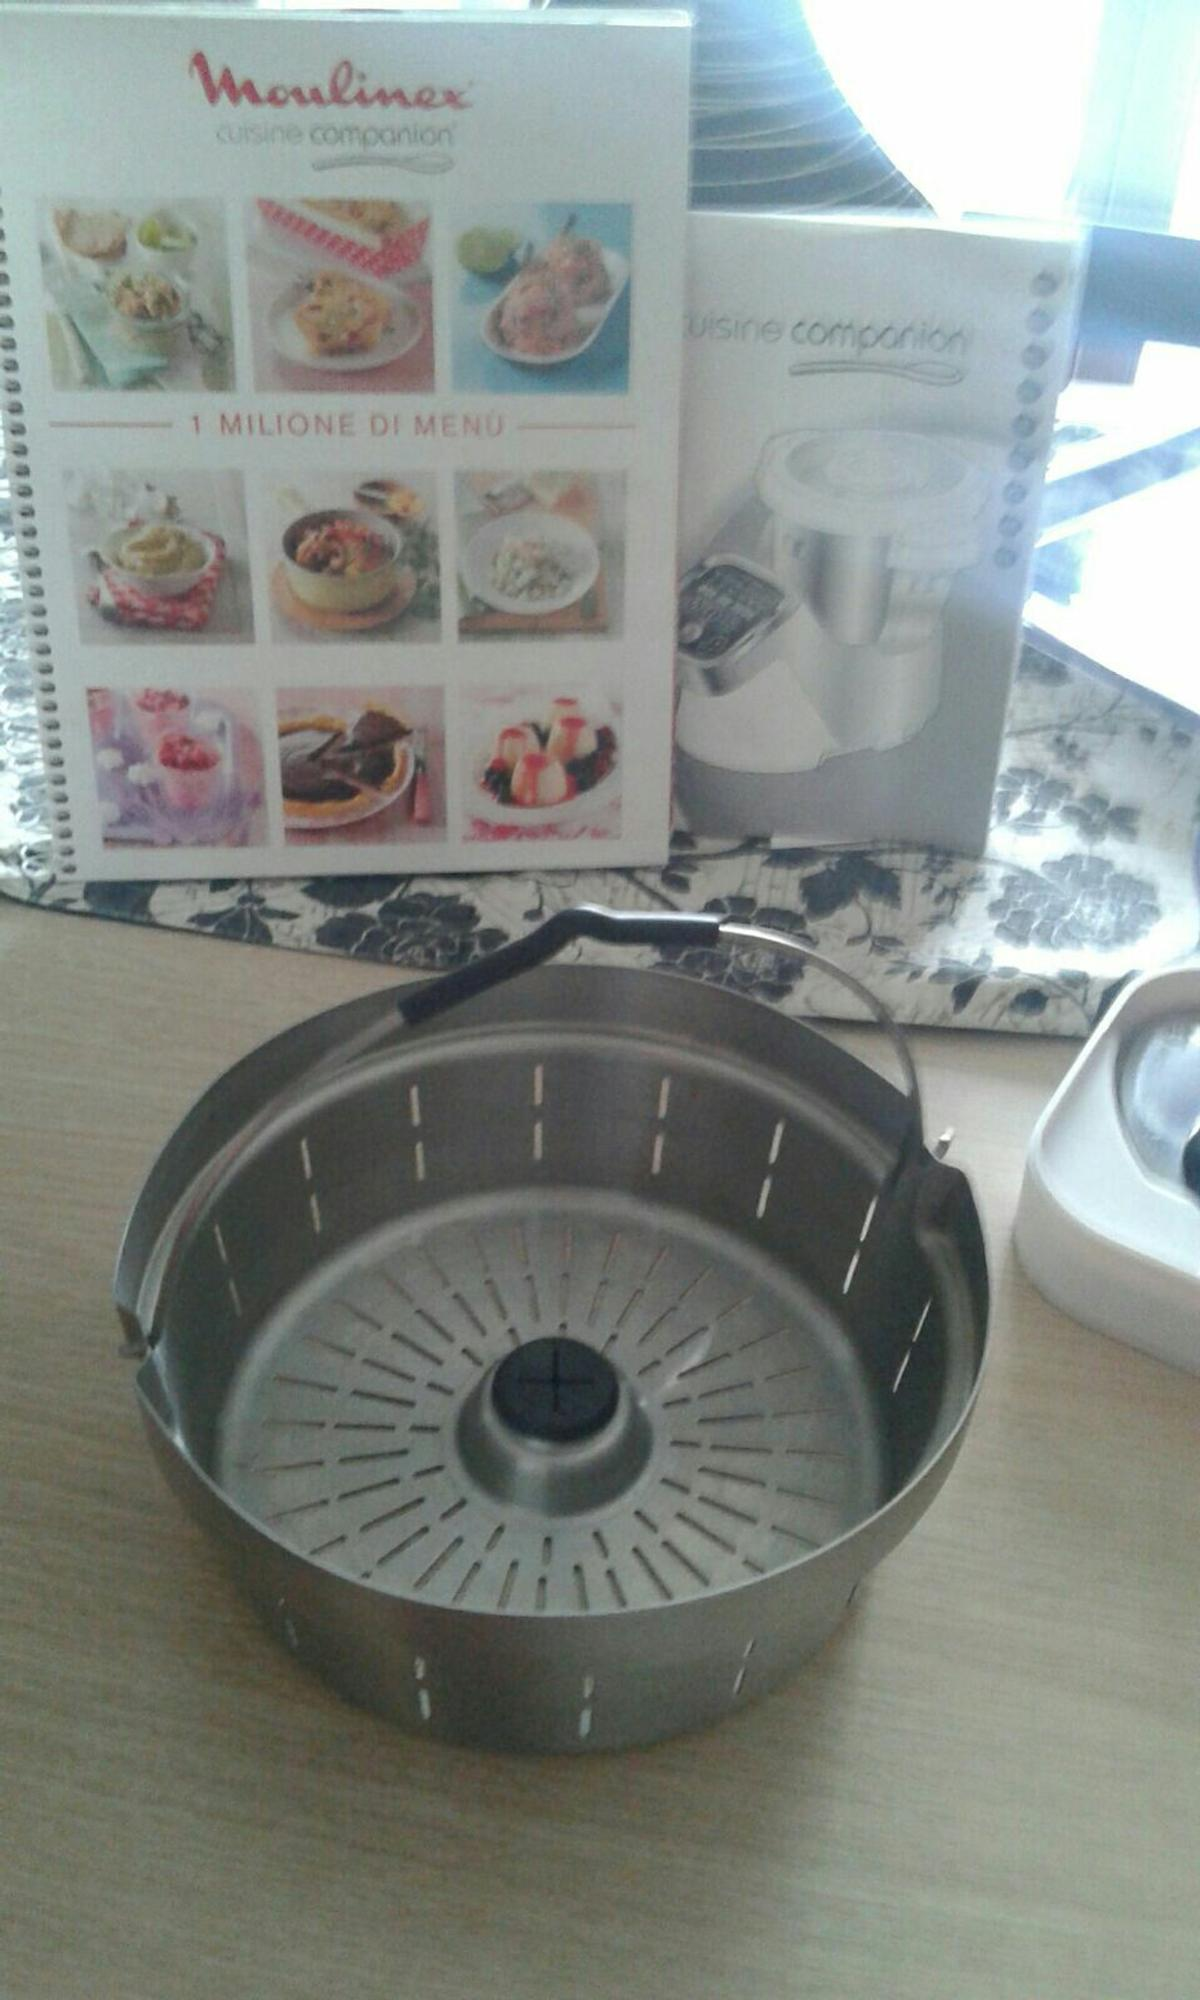 Moulinex Cuisine Companion In 07047 Thiesi For 350 00 For